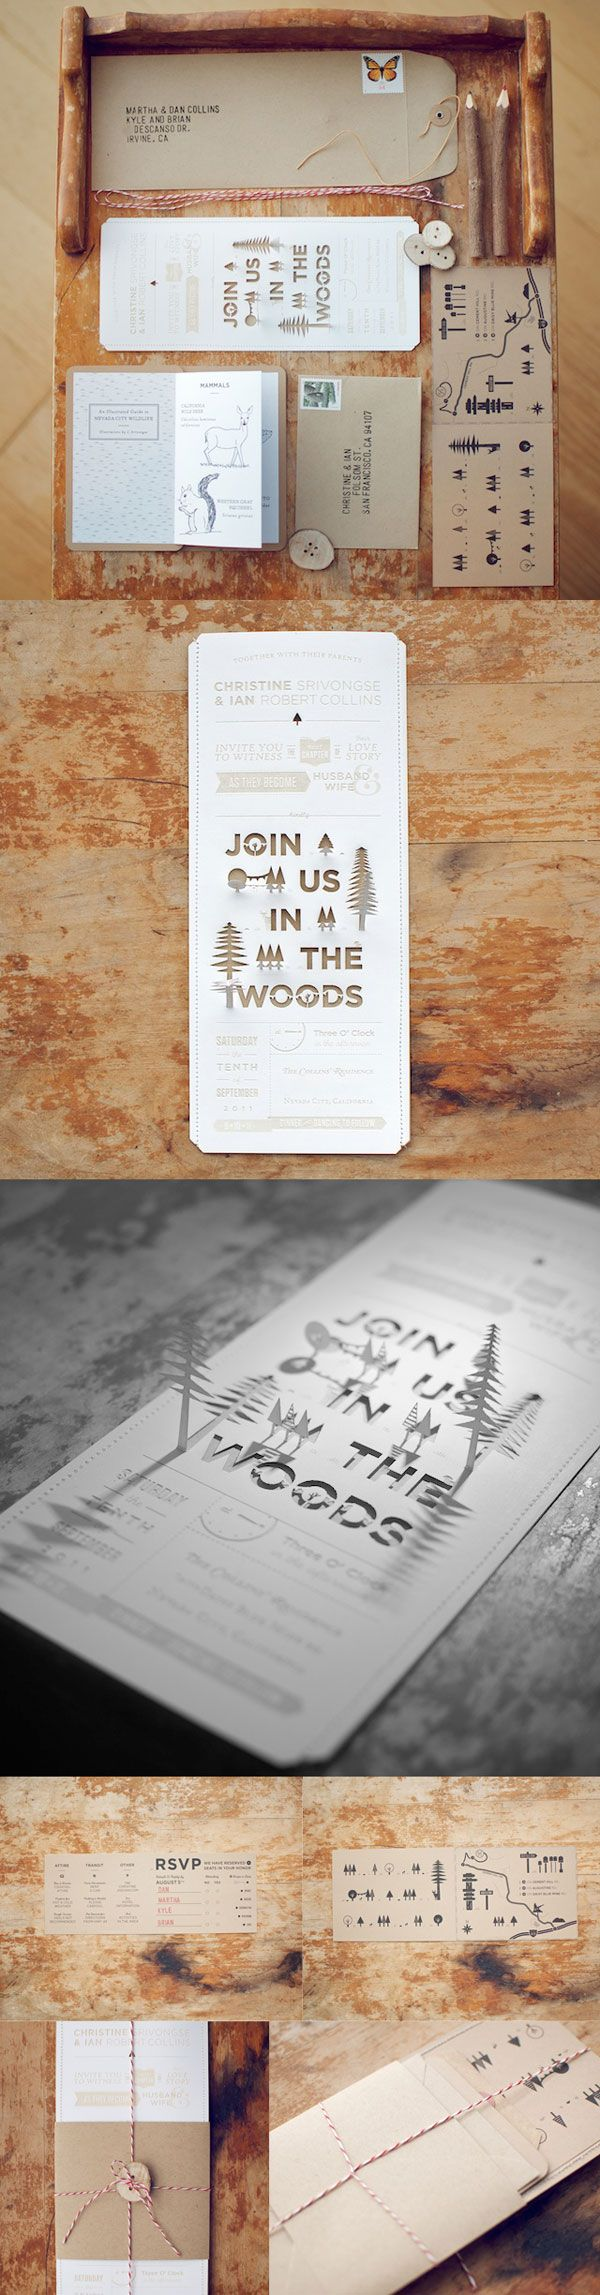 wood cut invitation 178 best Invitation Designs